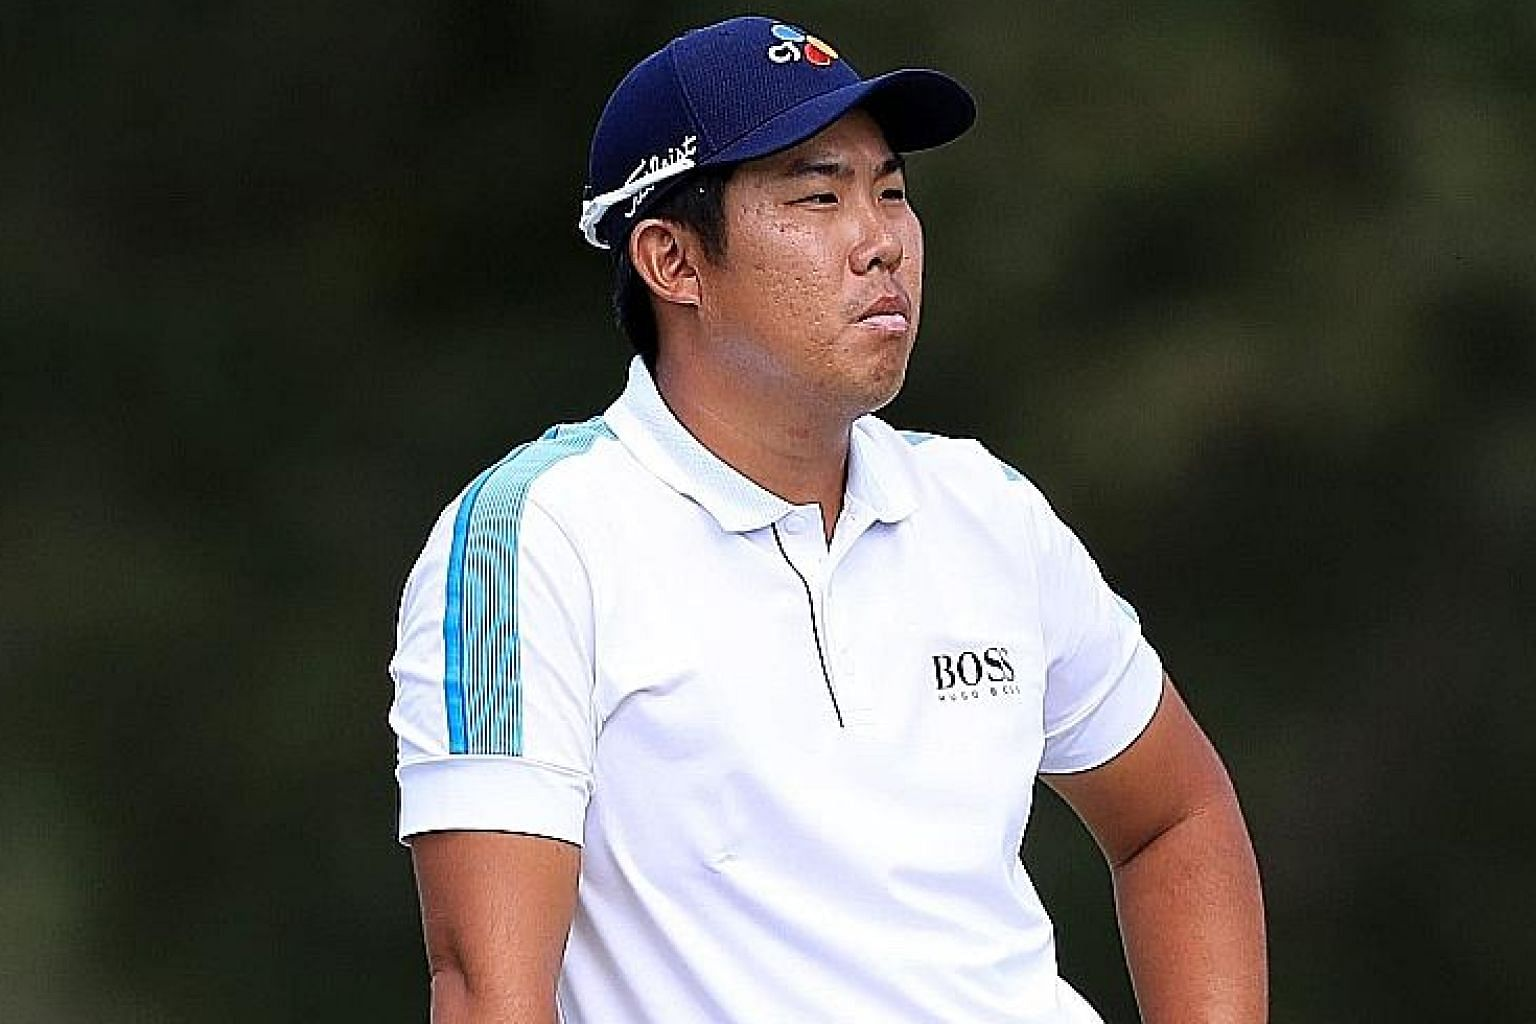 An Byeong-hun hit well when it mattered to lead the opening round of the CJ Cup.